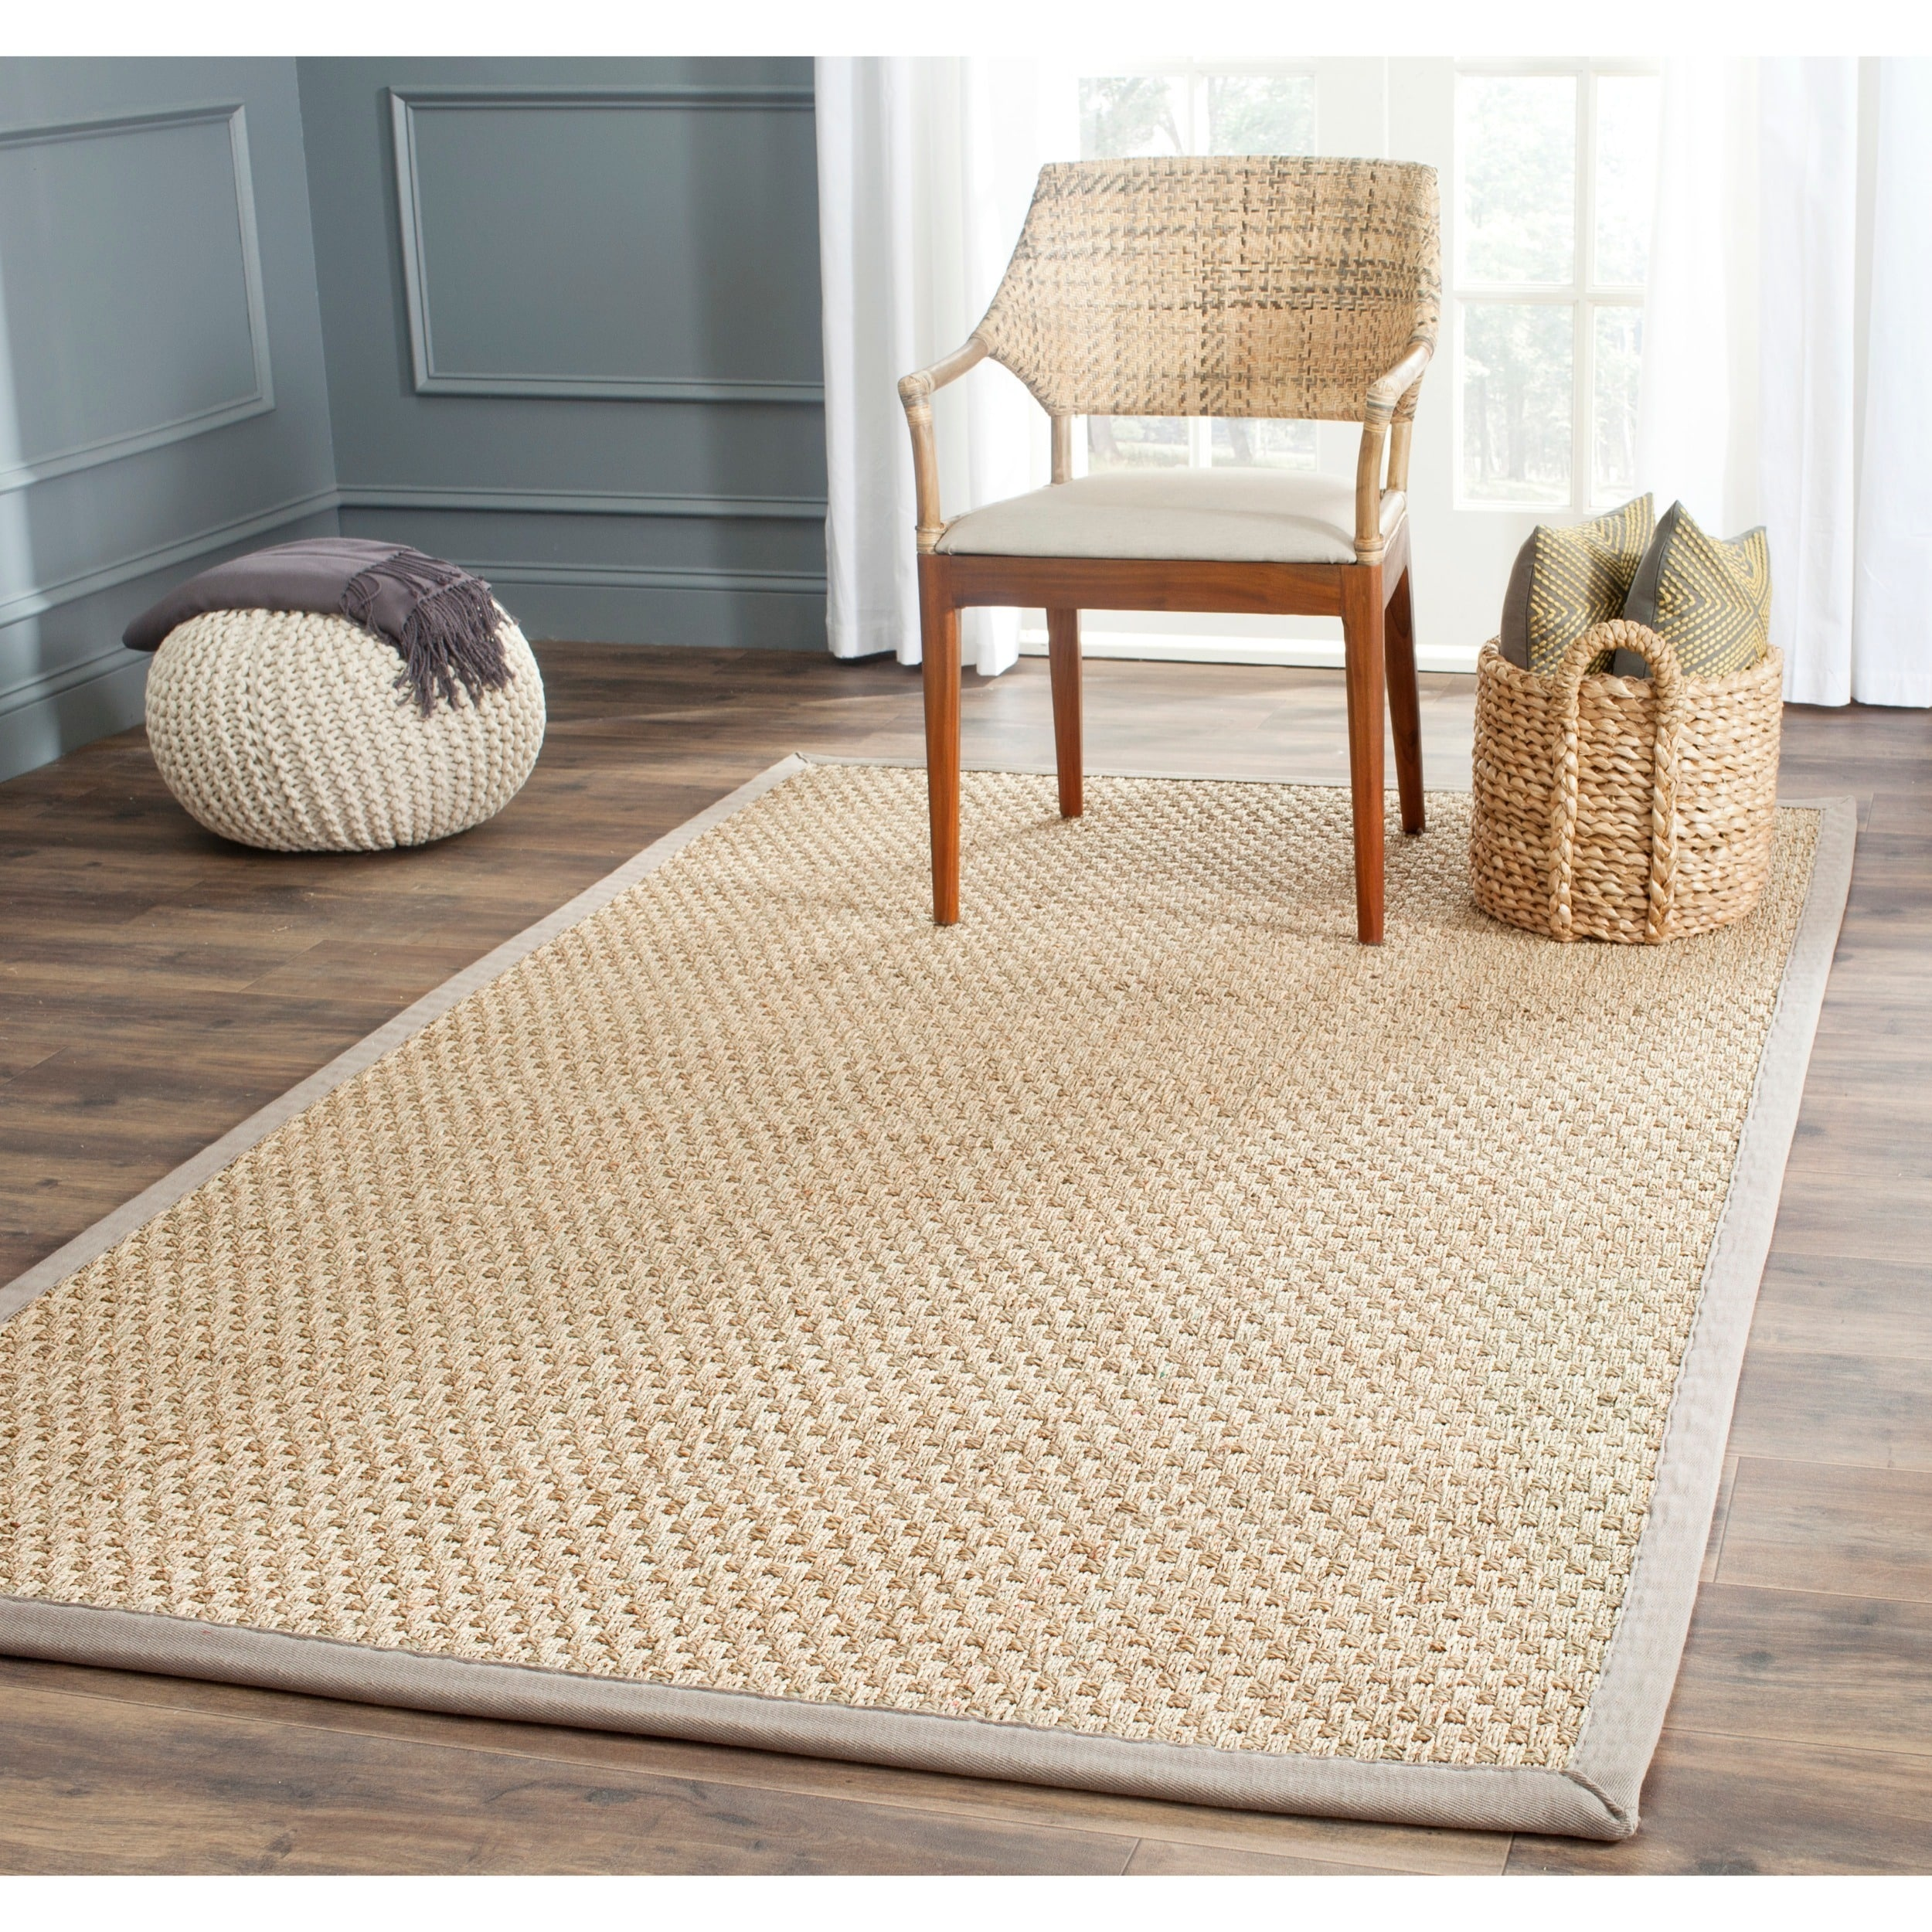 Safavieh Grey Sisal Sea Grass Rug (8u0026#39; x 10u0026#39;) - Overstock Shopping - Great Deals on Safavieh 7x9 ...